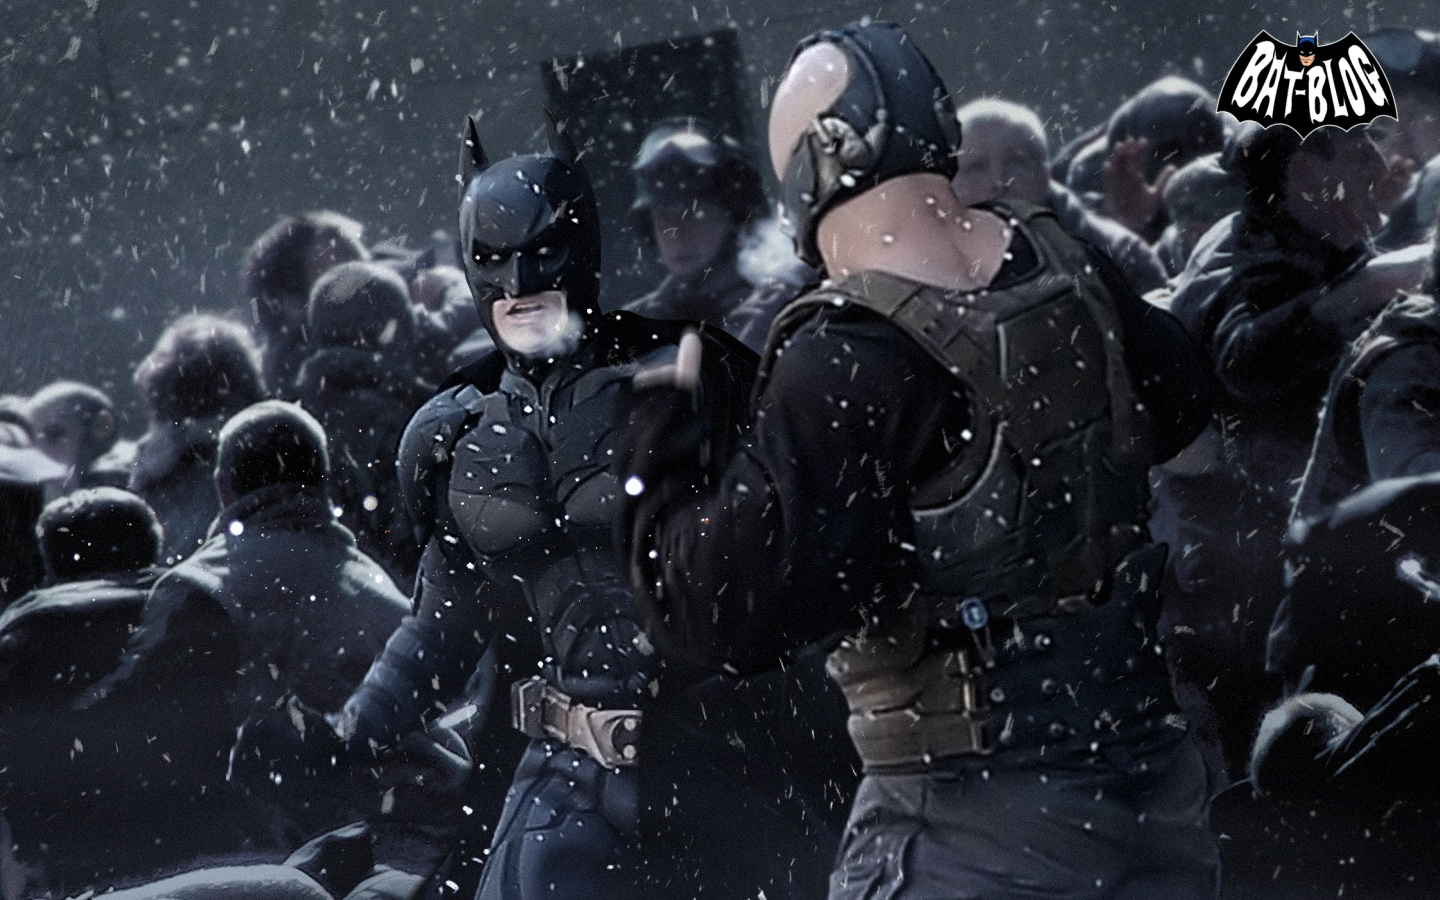 Batman 3 The Dark Knight Rises Wallpapers Bestwall